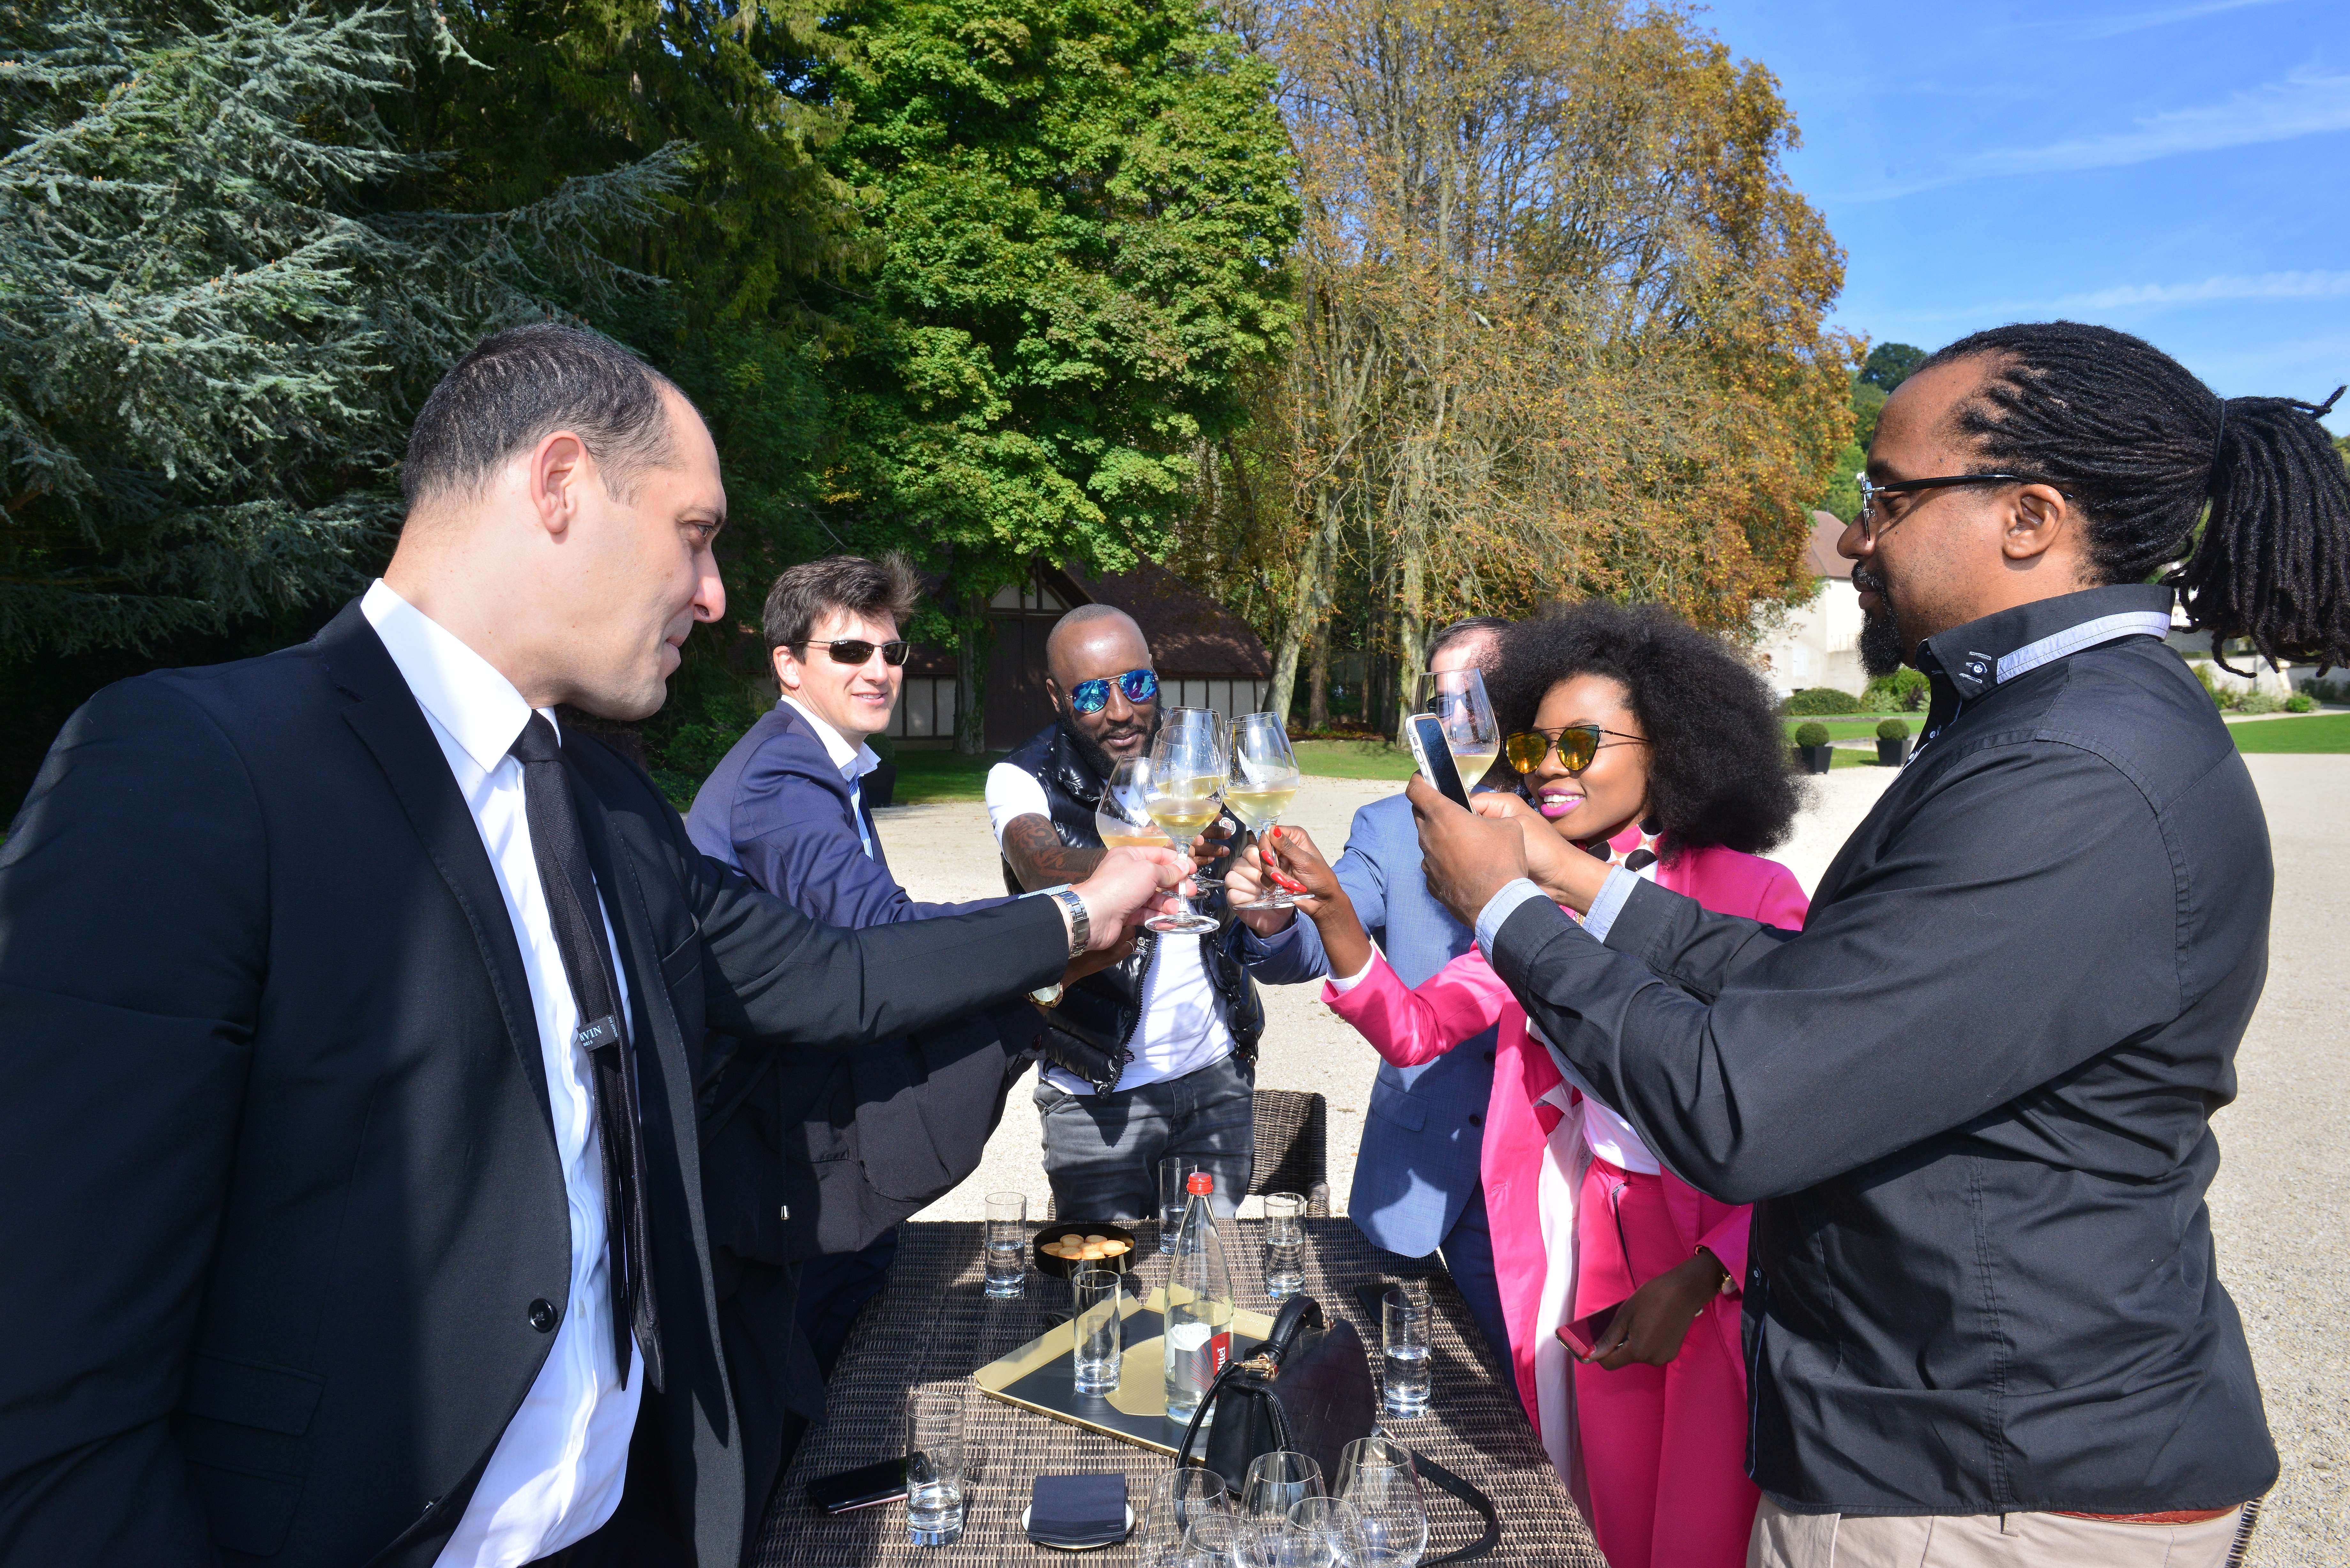 Pierre-Louis Araud Moët & Chandon's Brand Developement Manager joins the team at the Dom Perignon Abbey